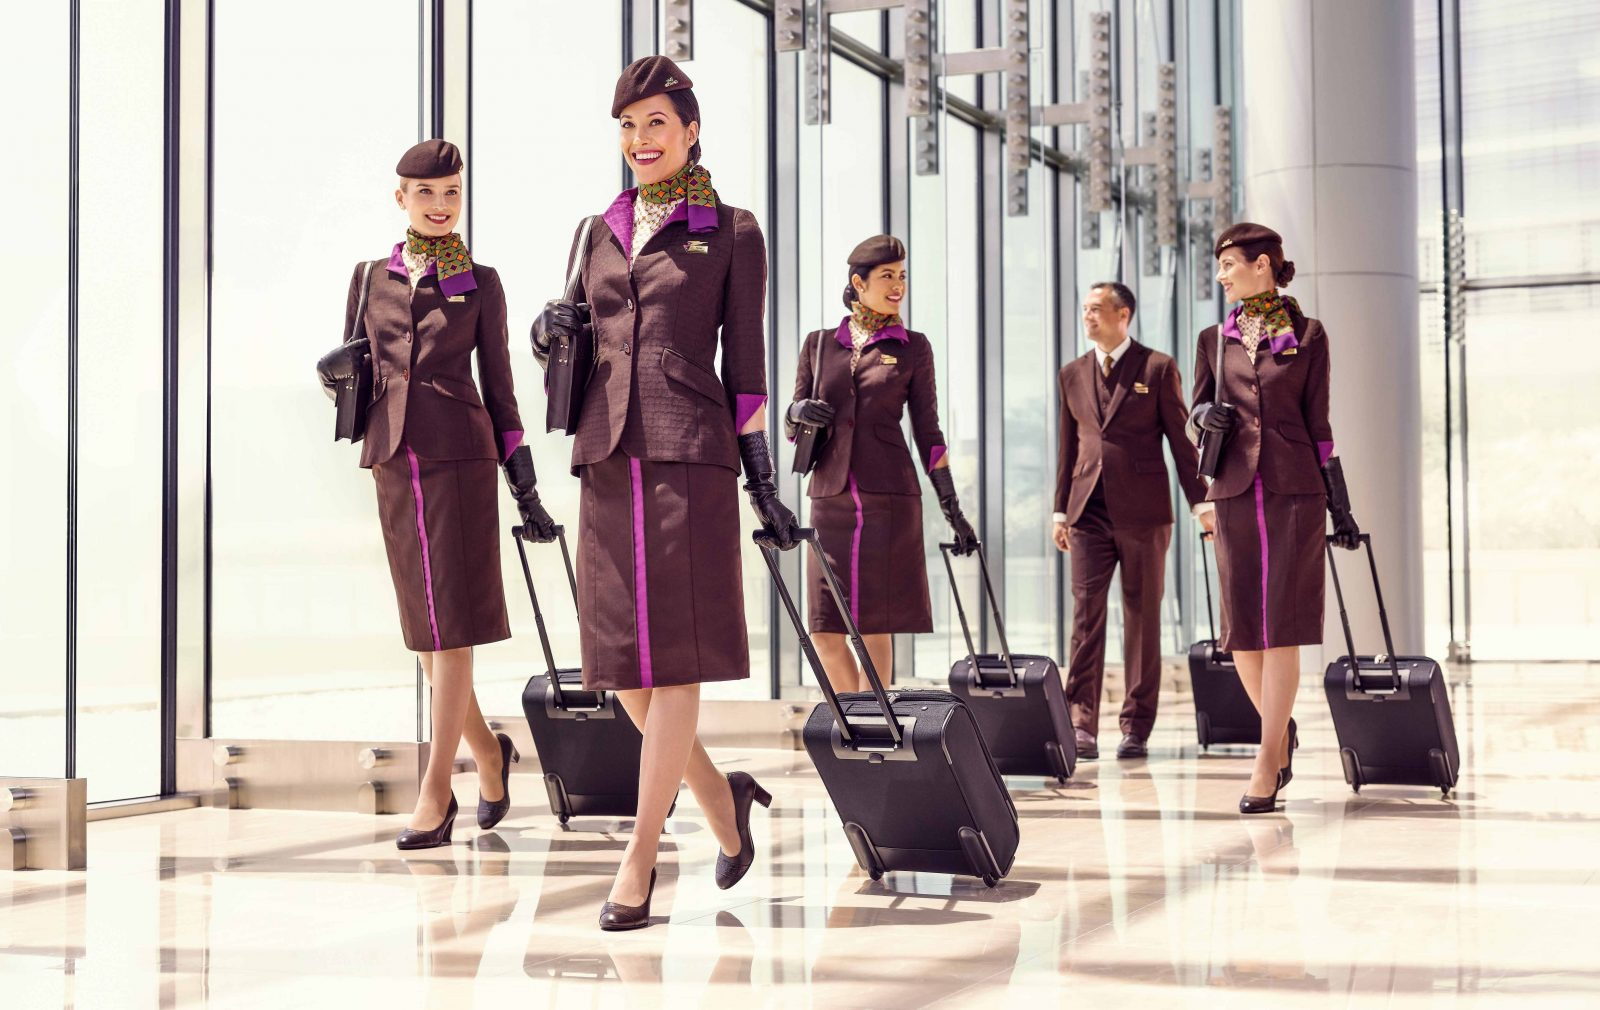 Etihad Airways is Finally Hiring New Cabin Crew Again - But Successful On Hold Candidates Will Have to Reapply